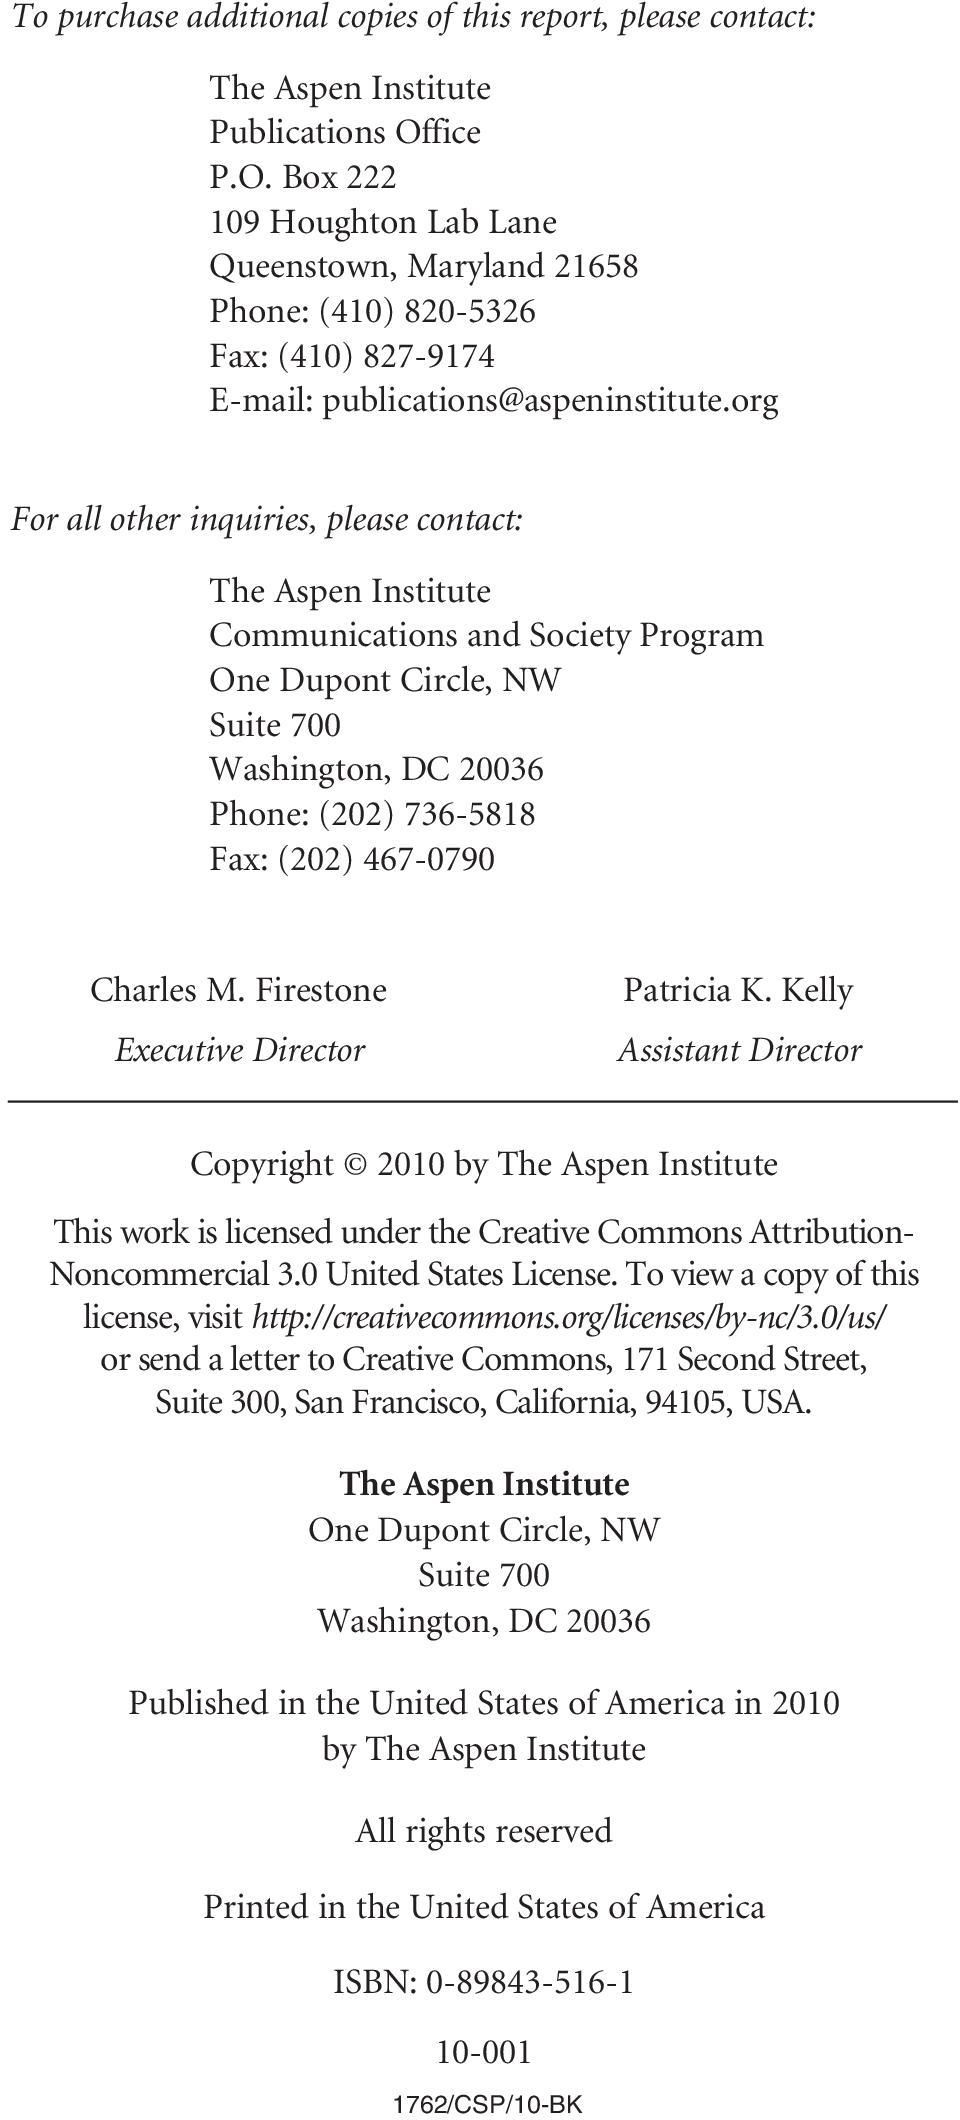 org For all other inquiries, please contact: The Aspen Institute Communications and Society Program One Dupont Circle, NW Suite 700 Washington, DC 20036 Phone: (202) 736-5818 Fax: (202) 467-0790